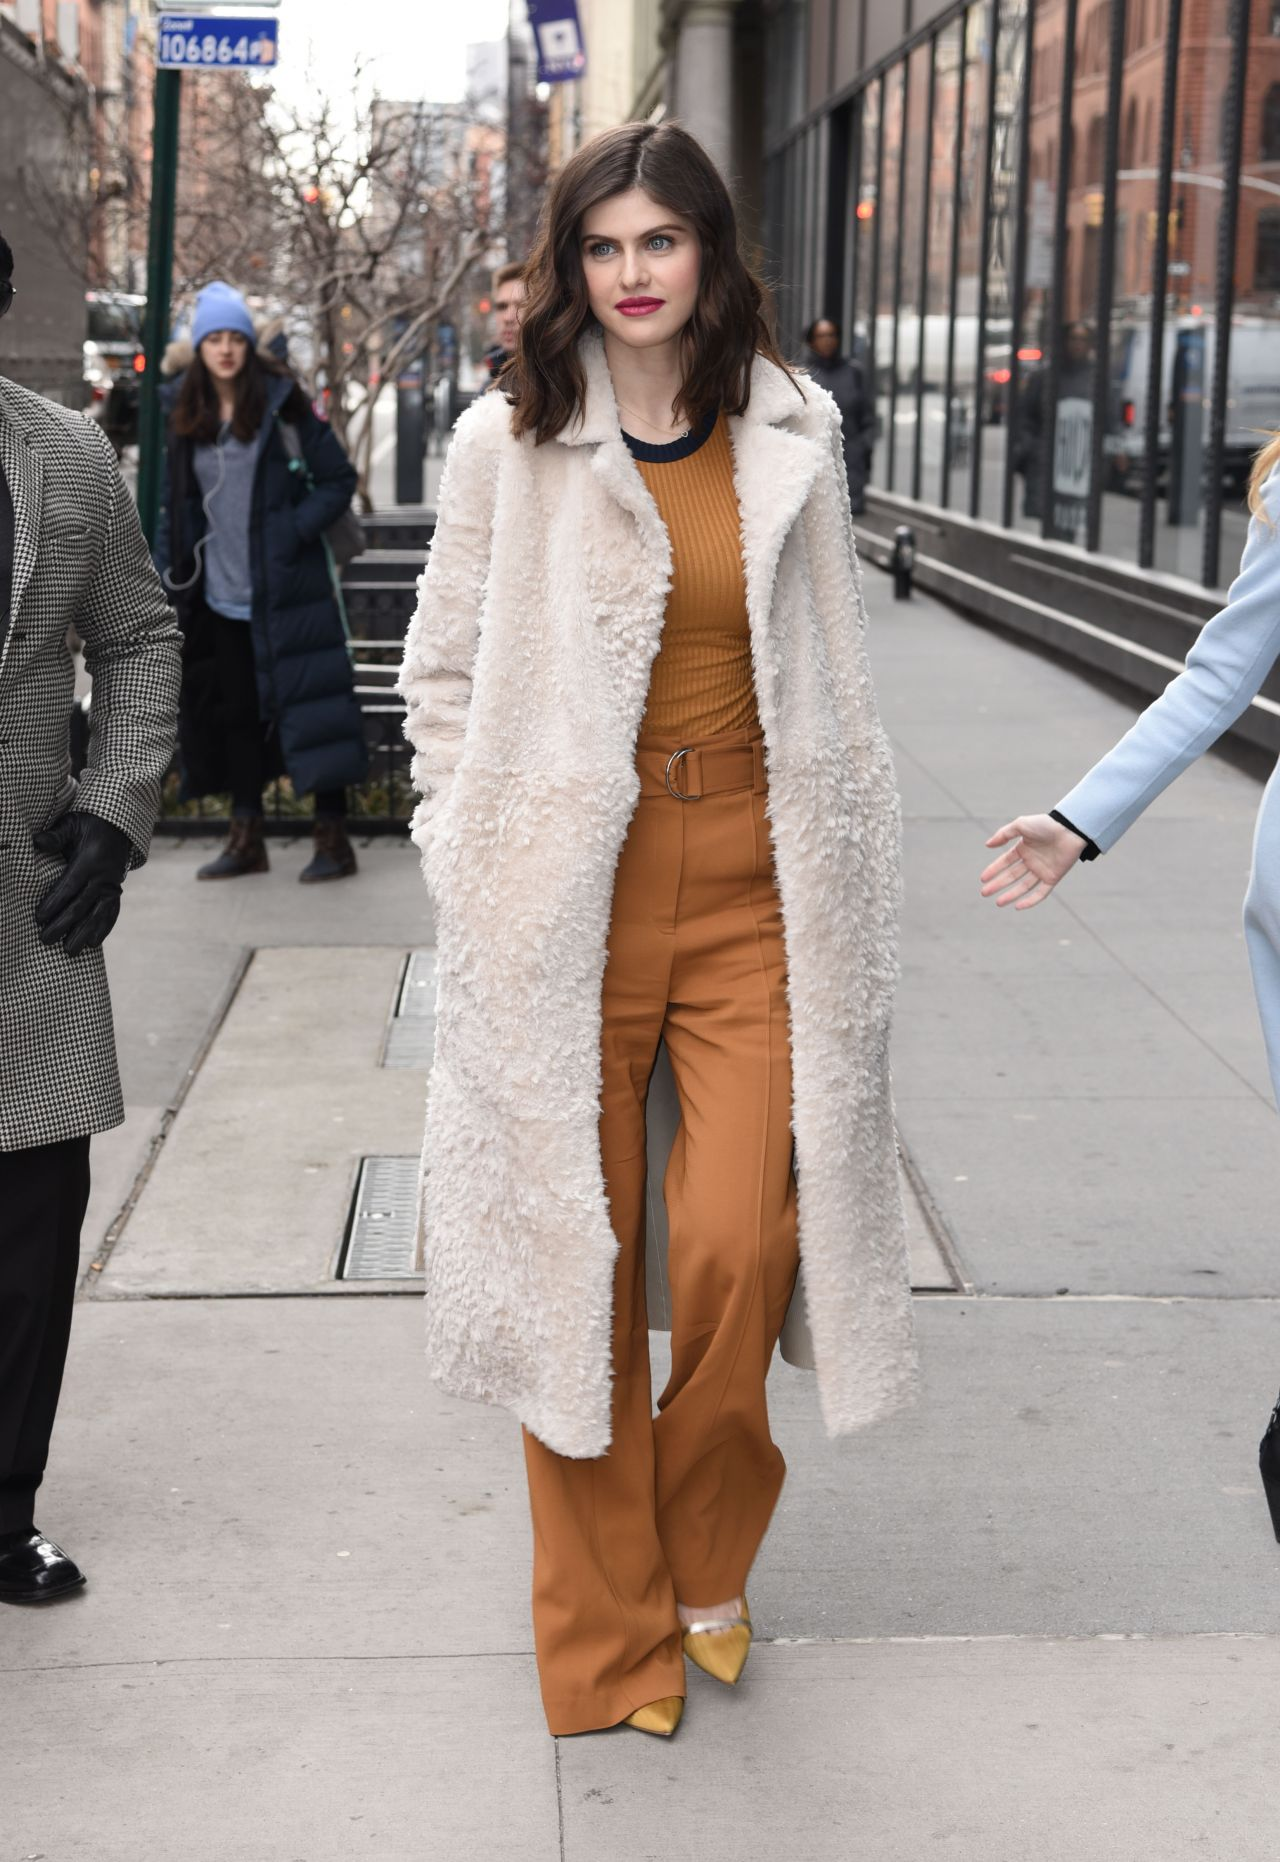 http://celebmafia.com/wp-content/uploads/2018/01/alexandra-daddario-style-outside-aol-live-in-nyc-01-29-2018-10.jpg